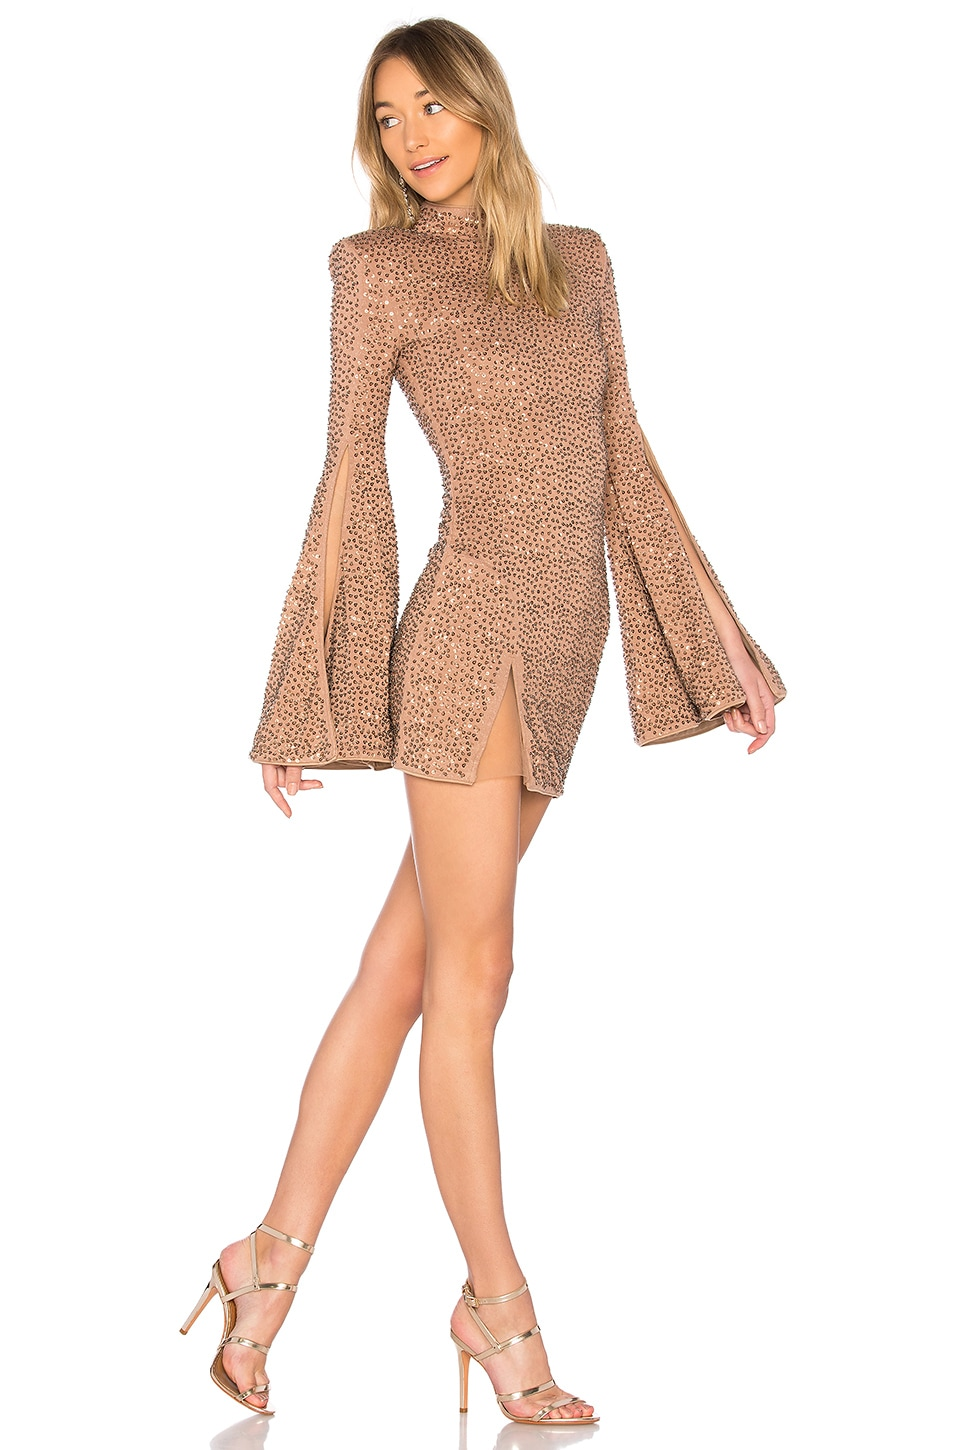 x REVOLVE Mr. Gibson Mini Dress, view 2, click to view large image.